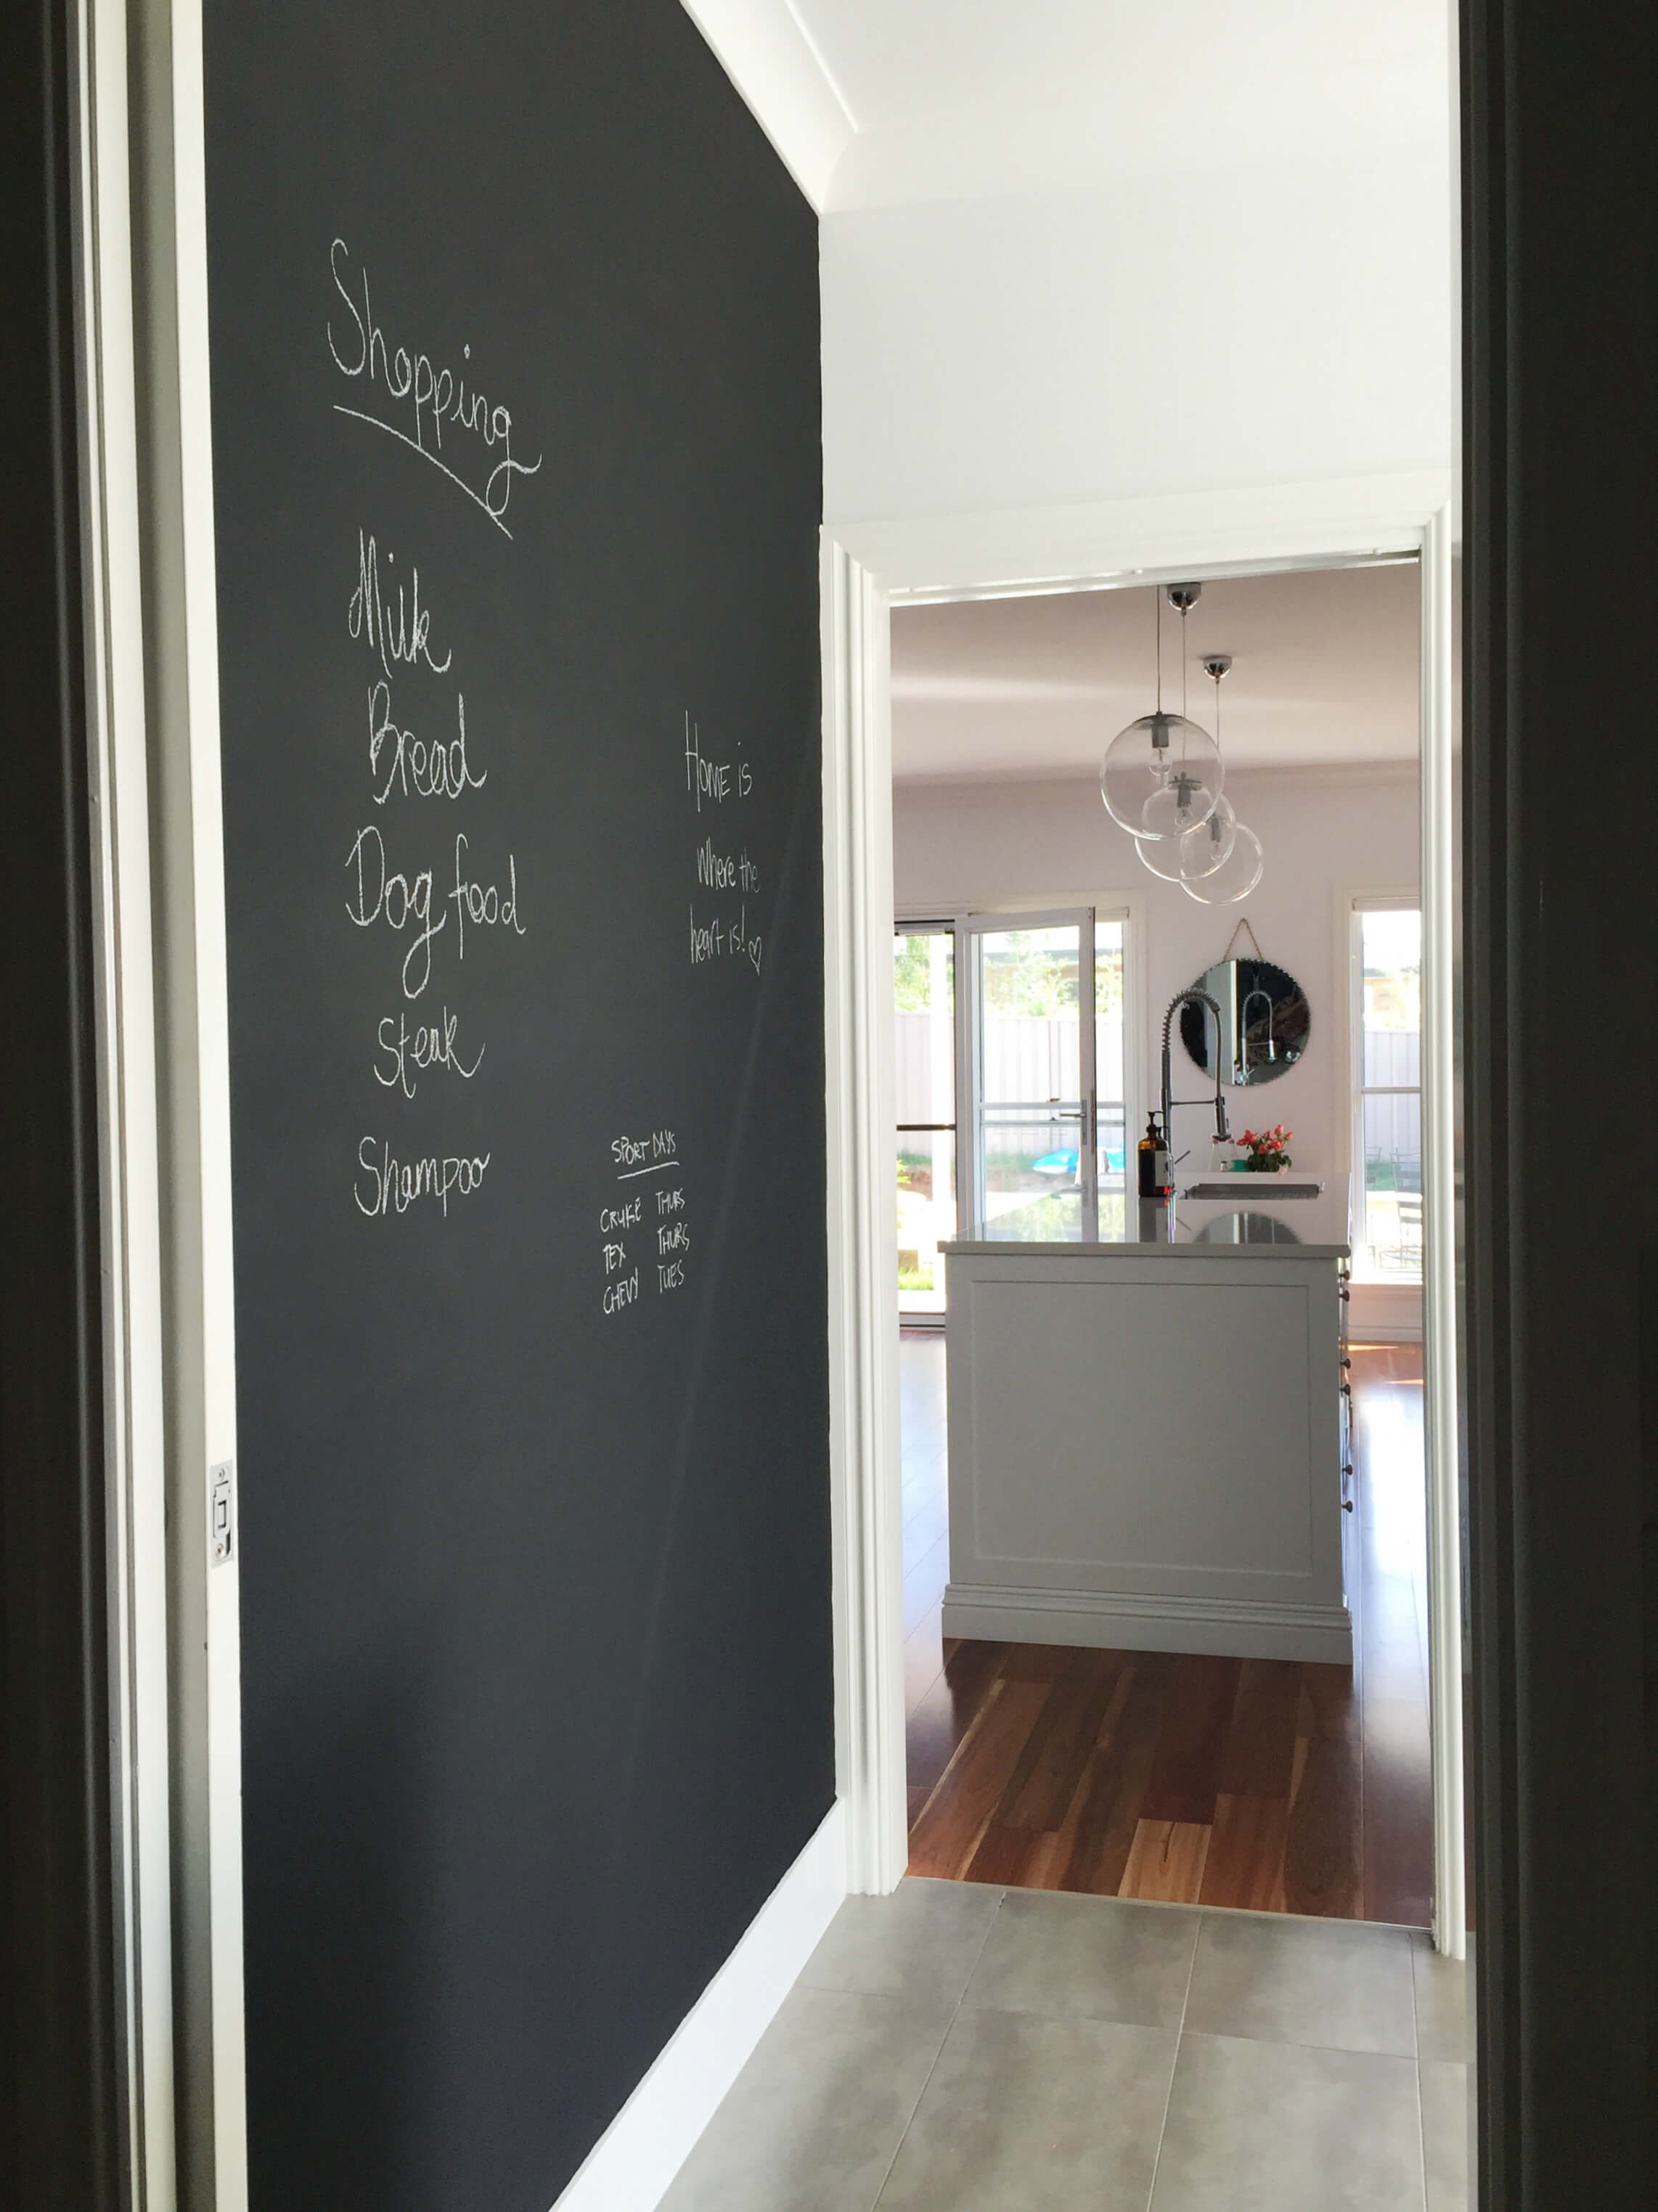 DIY: Chalkboard wall in the laundry